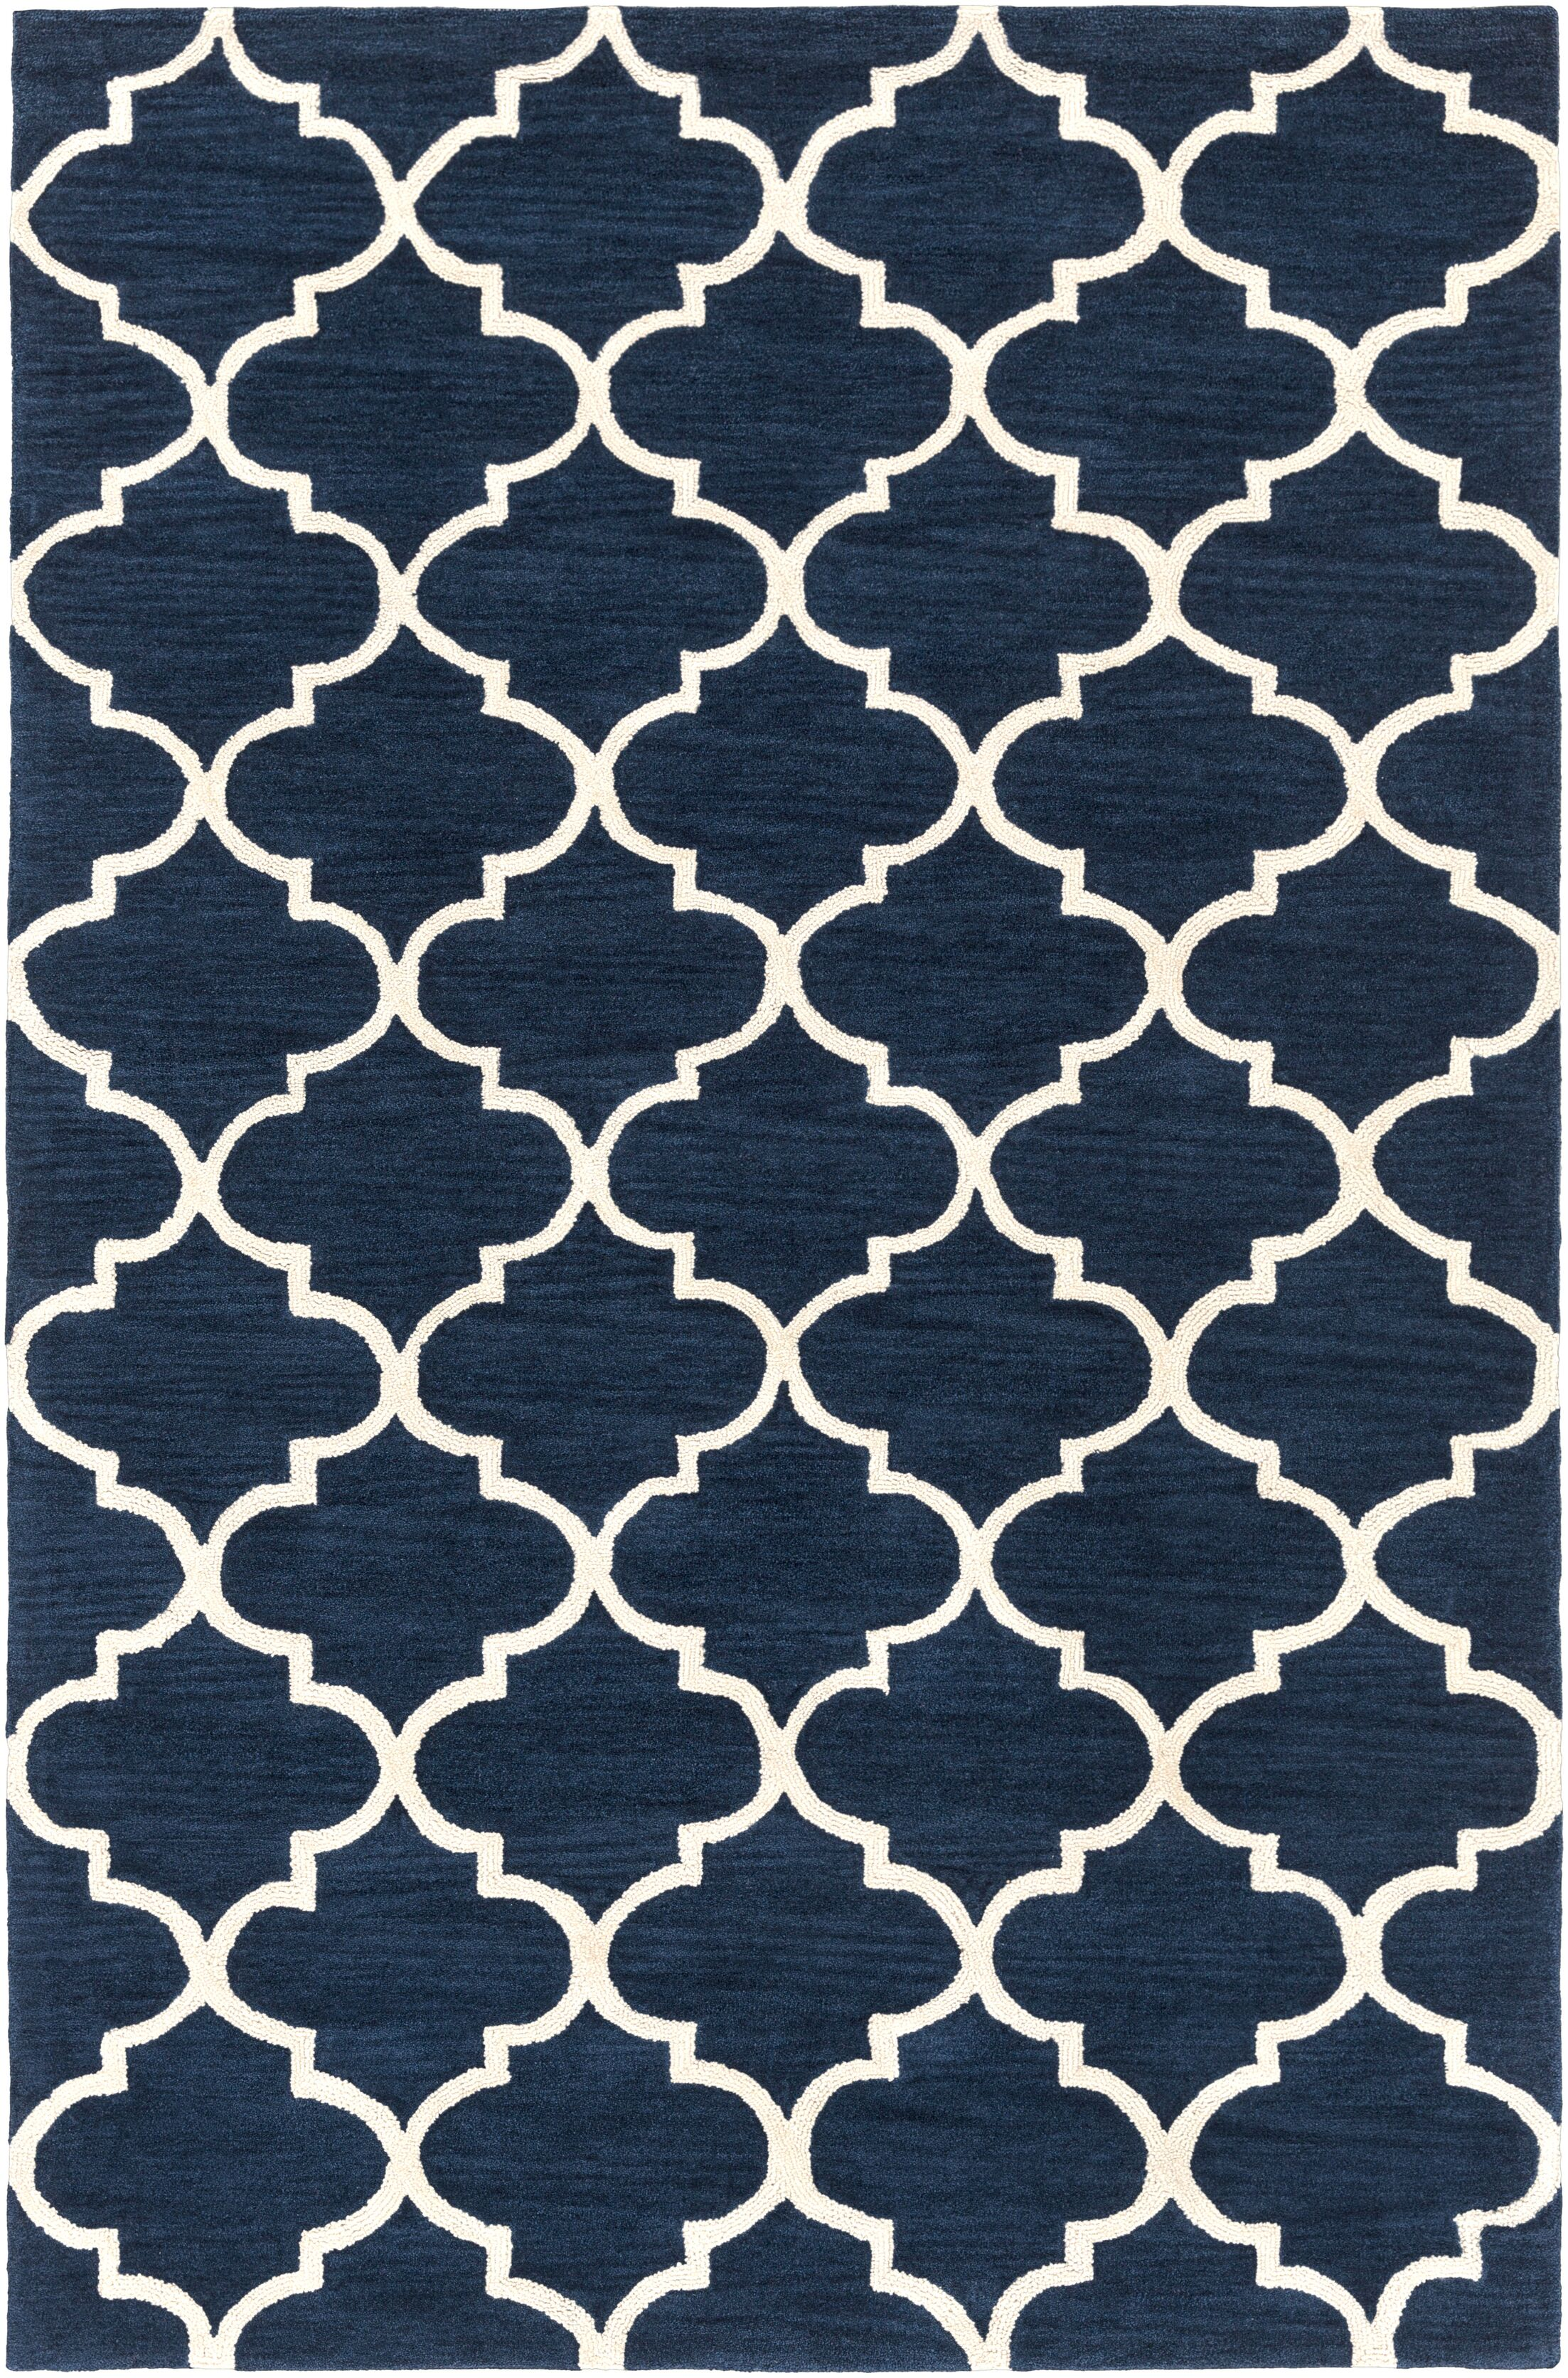 Cleaves Navy/Ivory Area Rug Rug Size: Rectangle 5' x 7'6